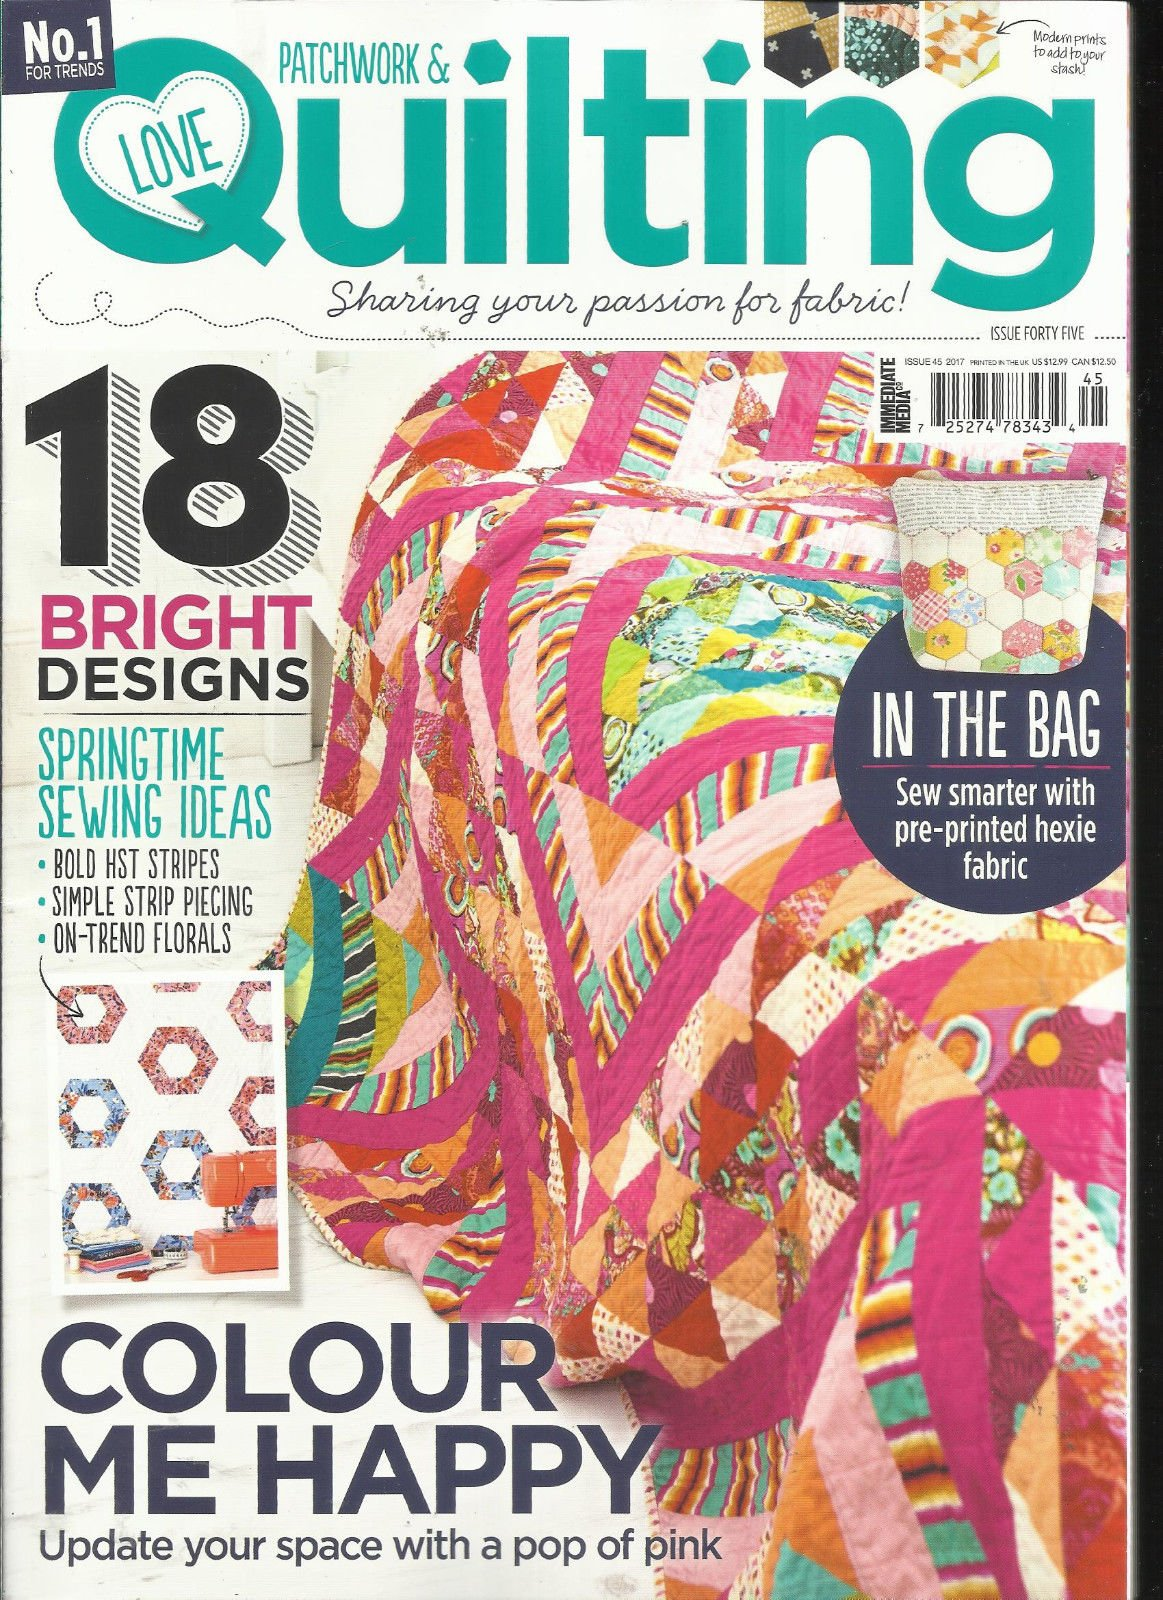 PATCHWORK & LOVE QUILTING, SHARING YOUR PASSION FOR FABRIC! ISSUE, 2017 NO.45